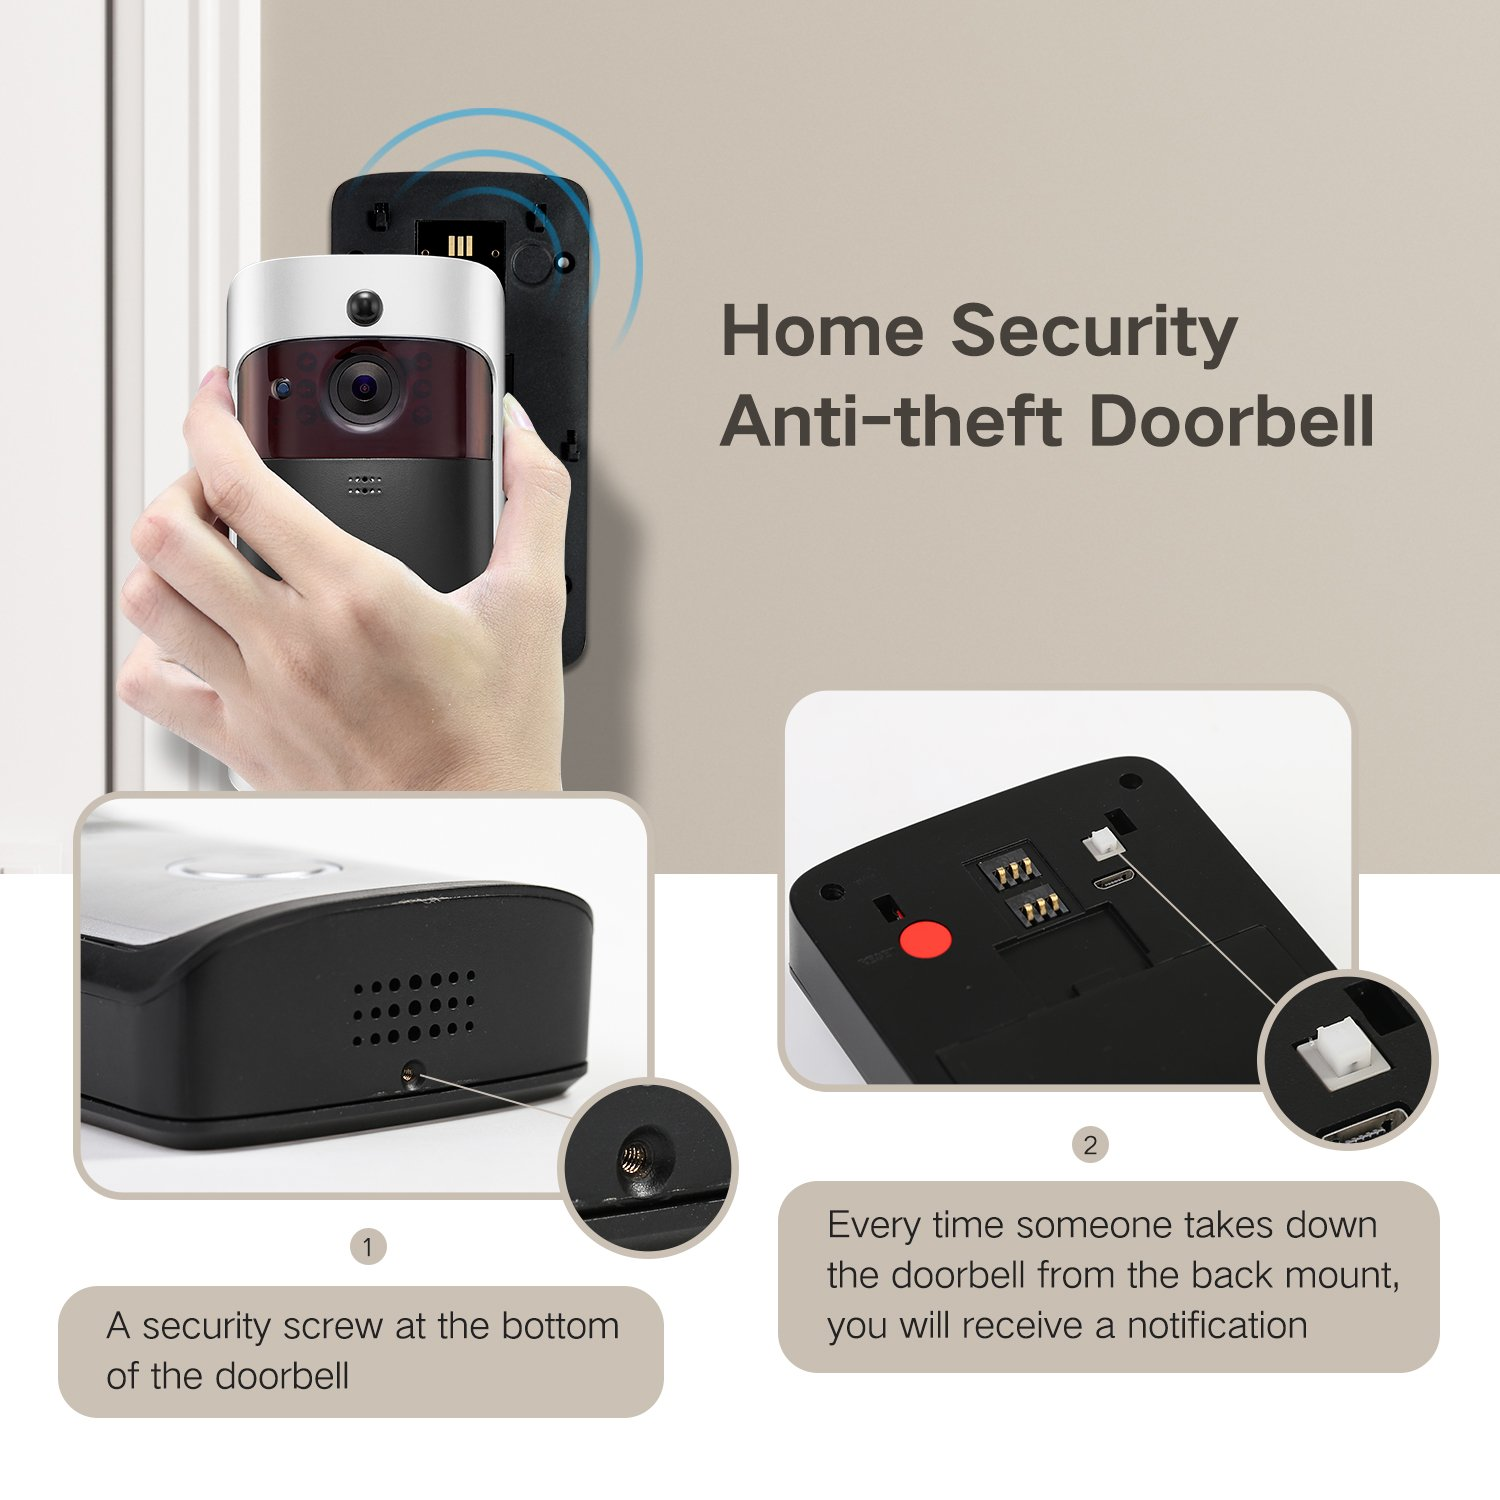 GJT Smart Video Doorbell Wireless Home WIFI Security Camera With Indoor Chime, 8G SD Card, Free Cloud Service, 2 Batteries, 2-Way Talk, Night Vision, PIR Motion Detection, APP Control for IOS Android by GJT (Image #6)